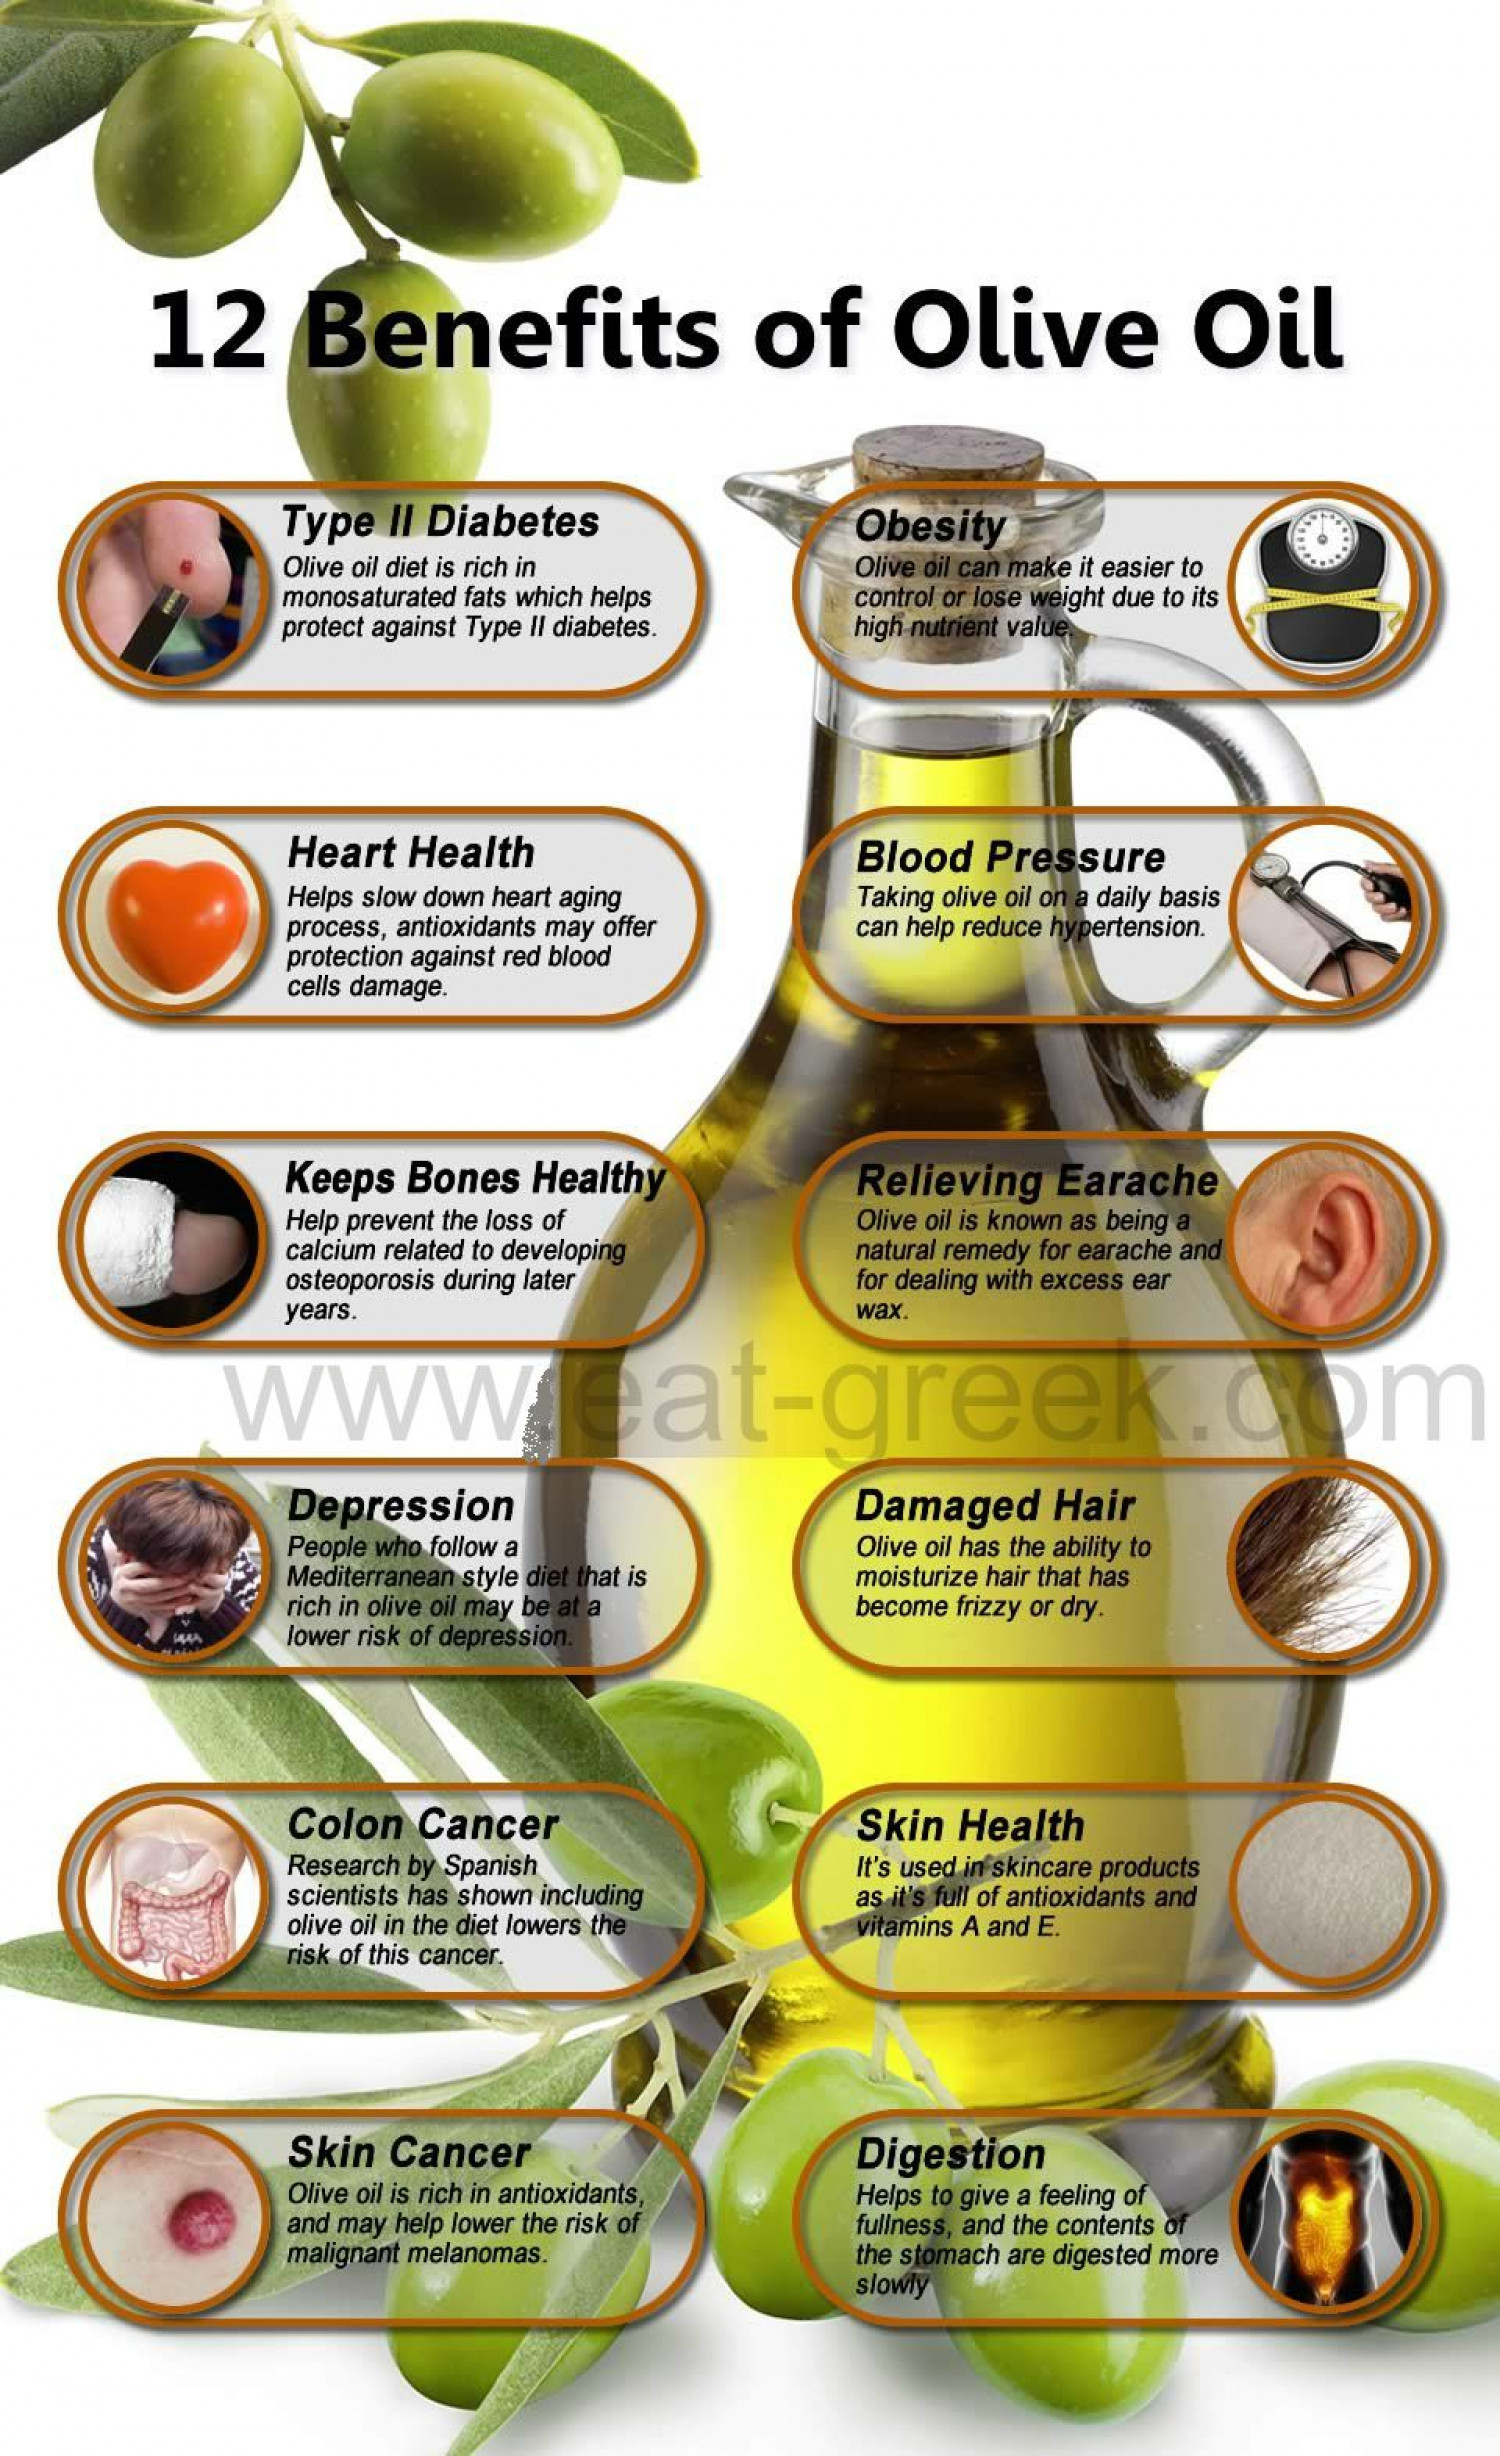 12 benefits of olive oil | visual.ly